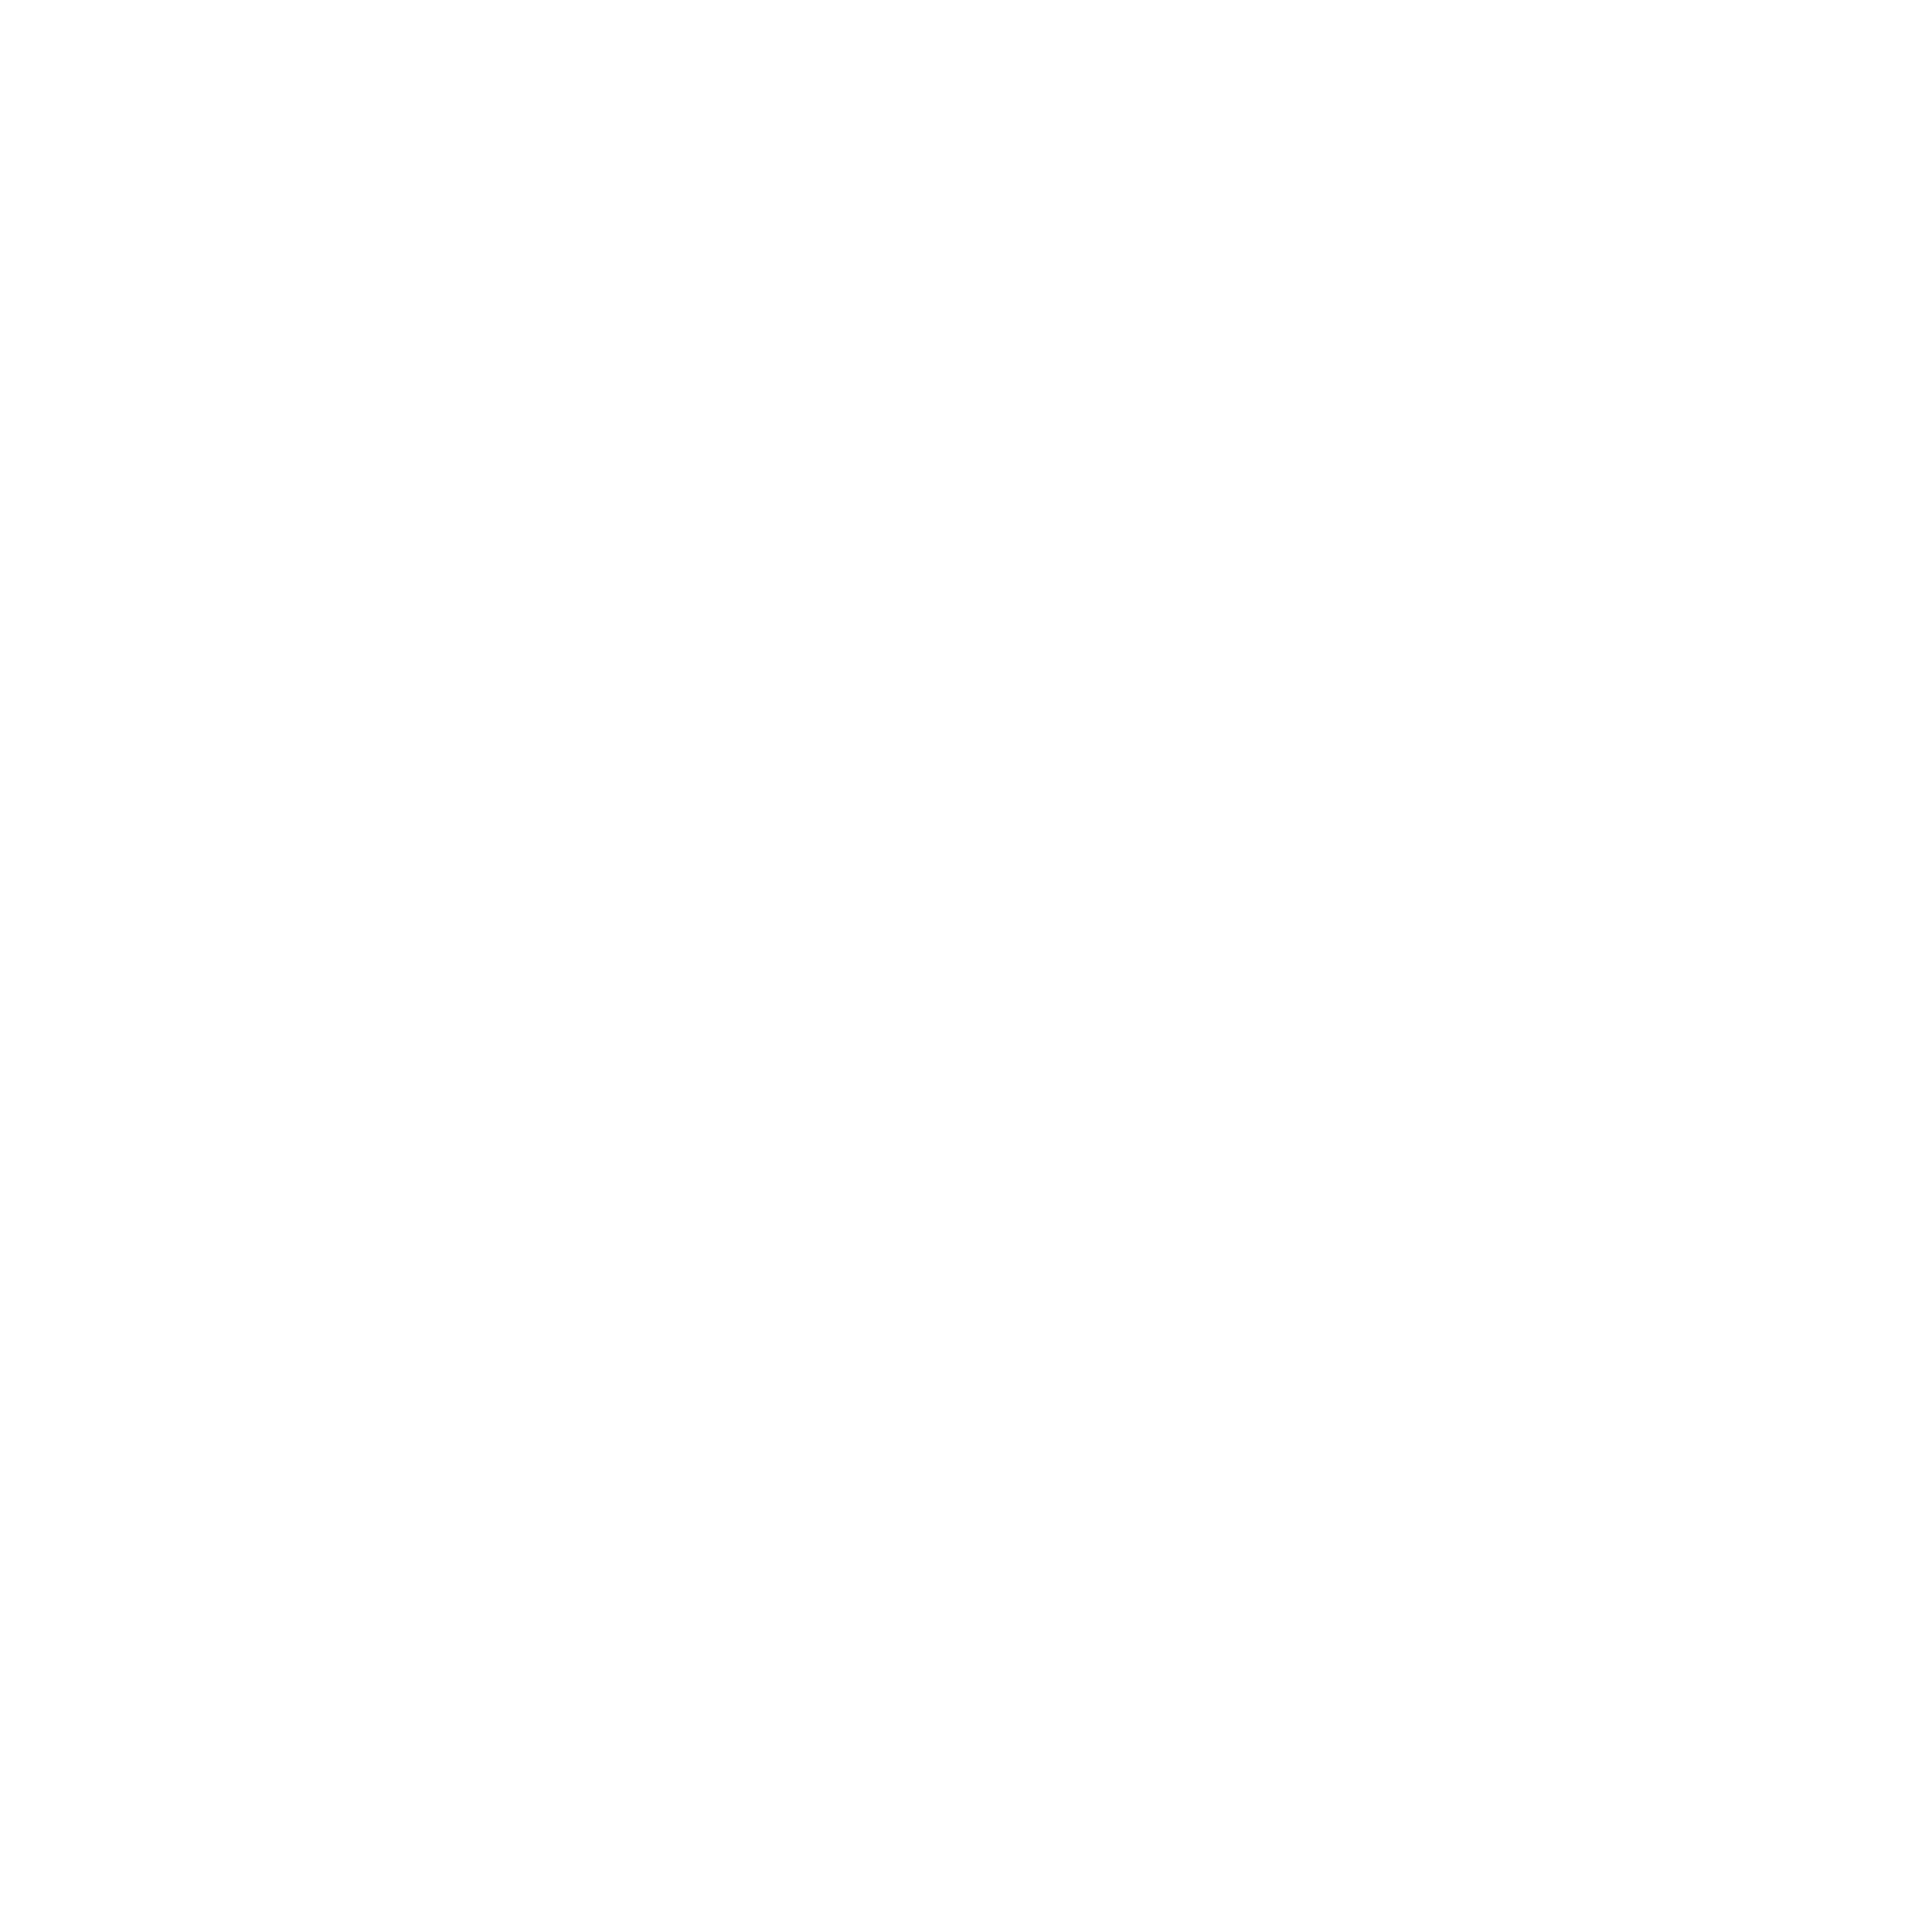 Alrajhi First Sport